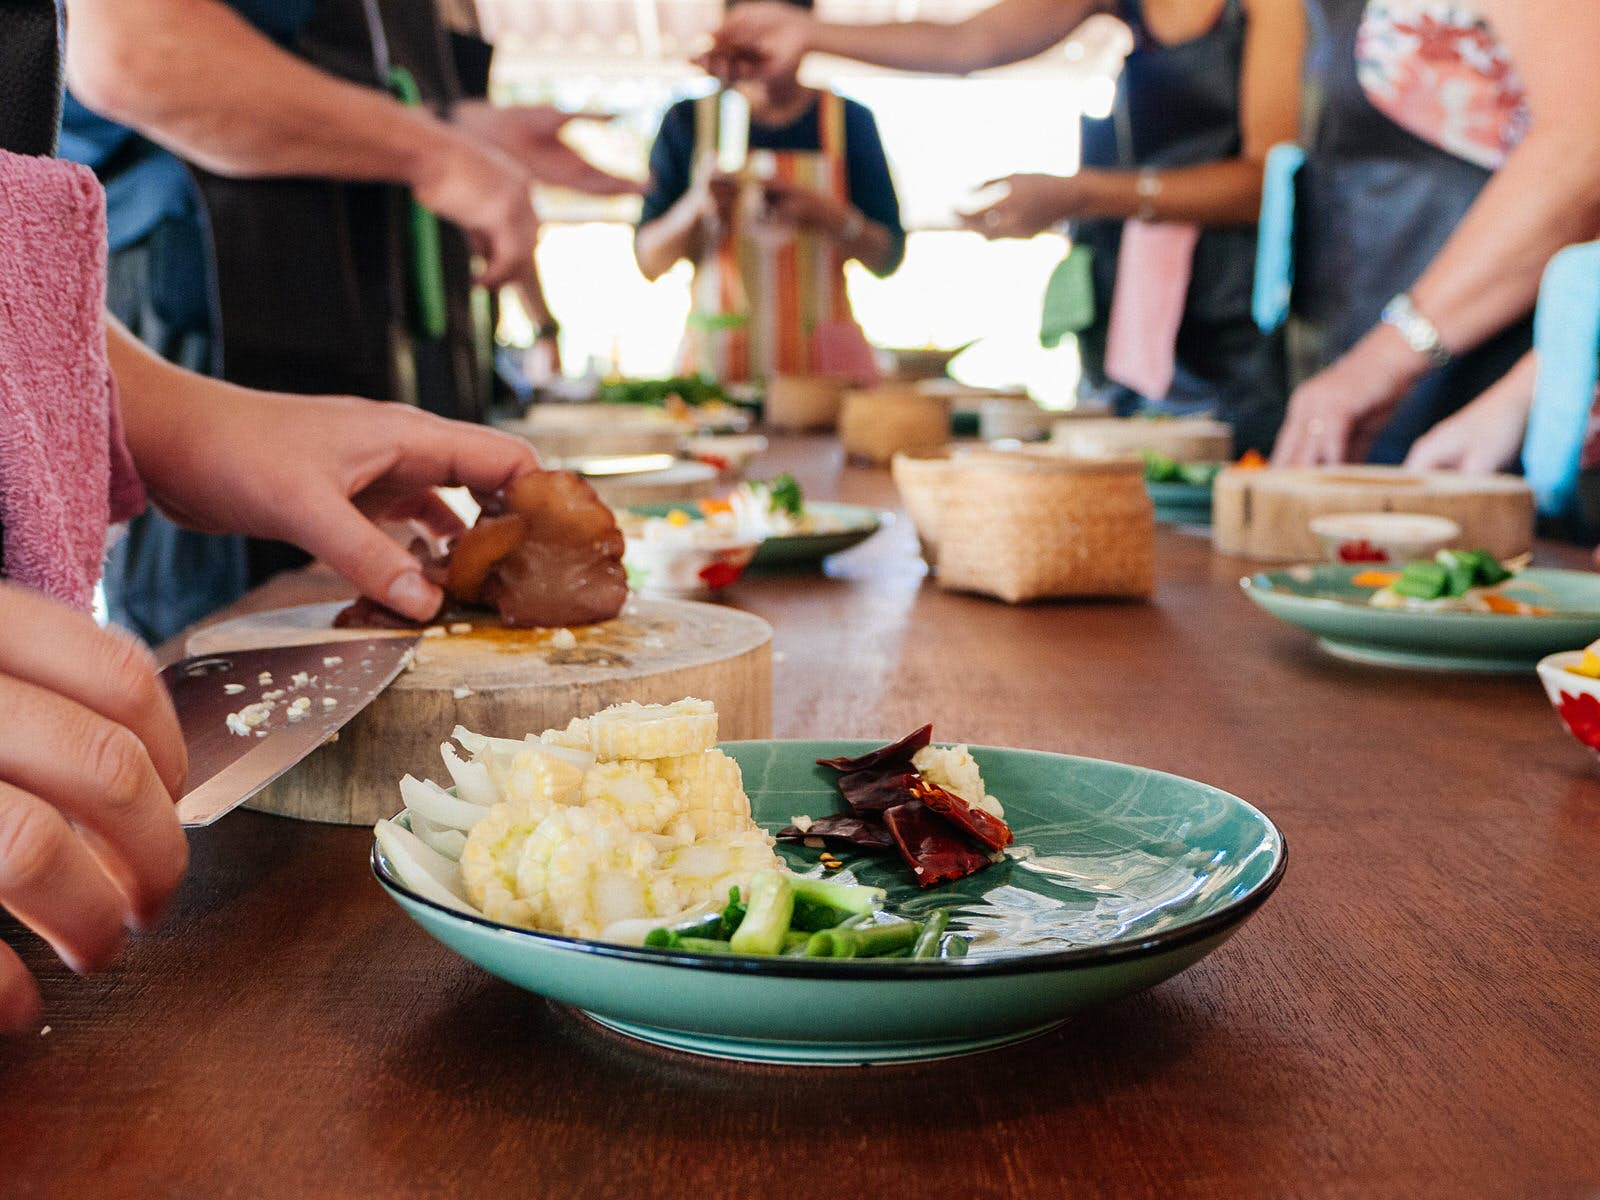 People stand either side of a table, which has a chopping board, ingredients and plates of Thai food